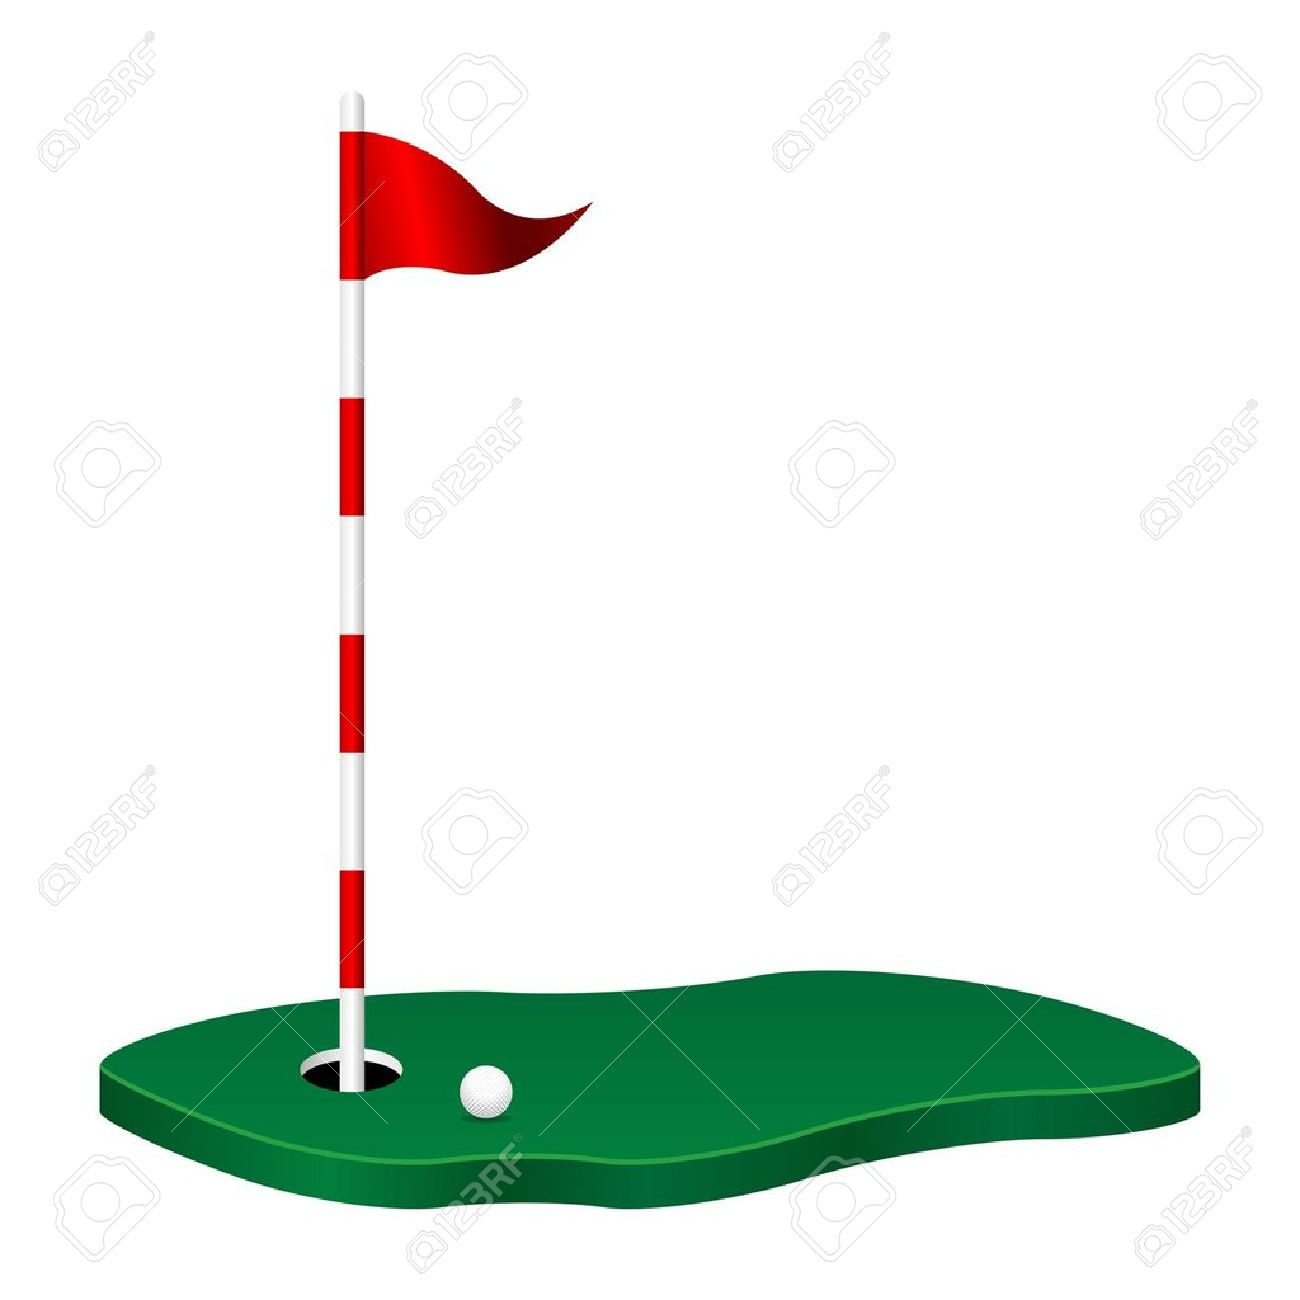 Golf Flag: Golf Theme With Green Flag Po-golf flag: Golf theme with green flag pole and ball-10